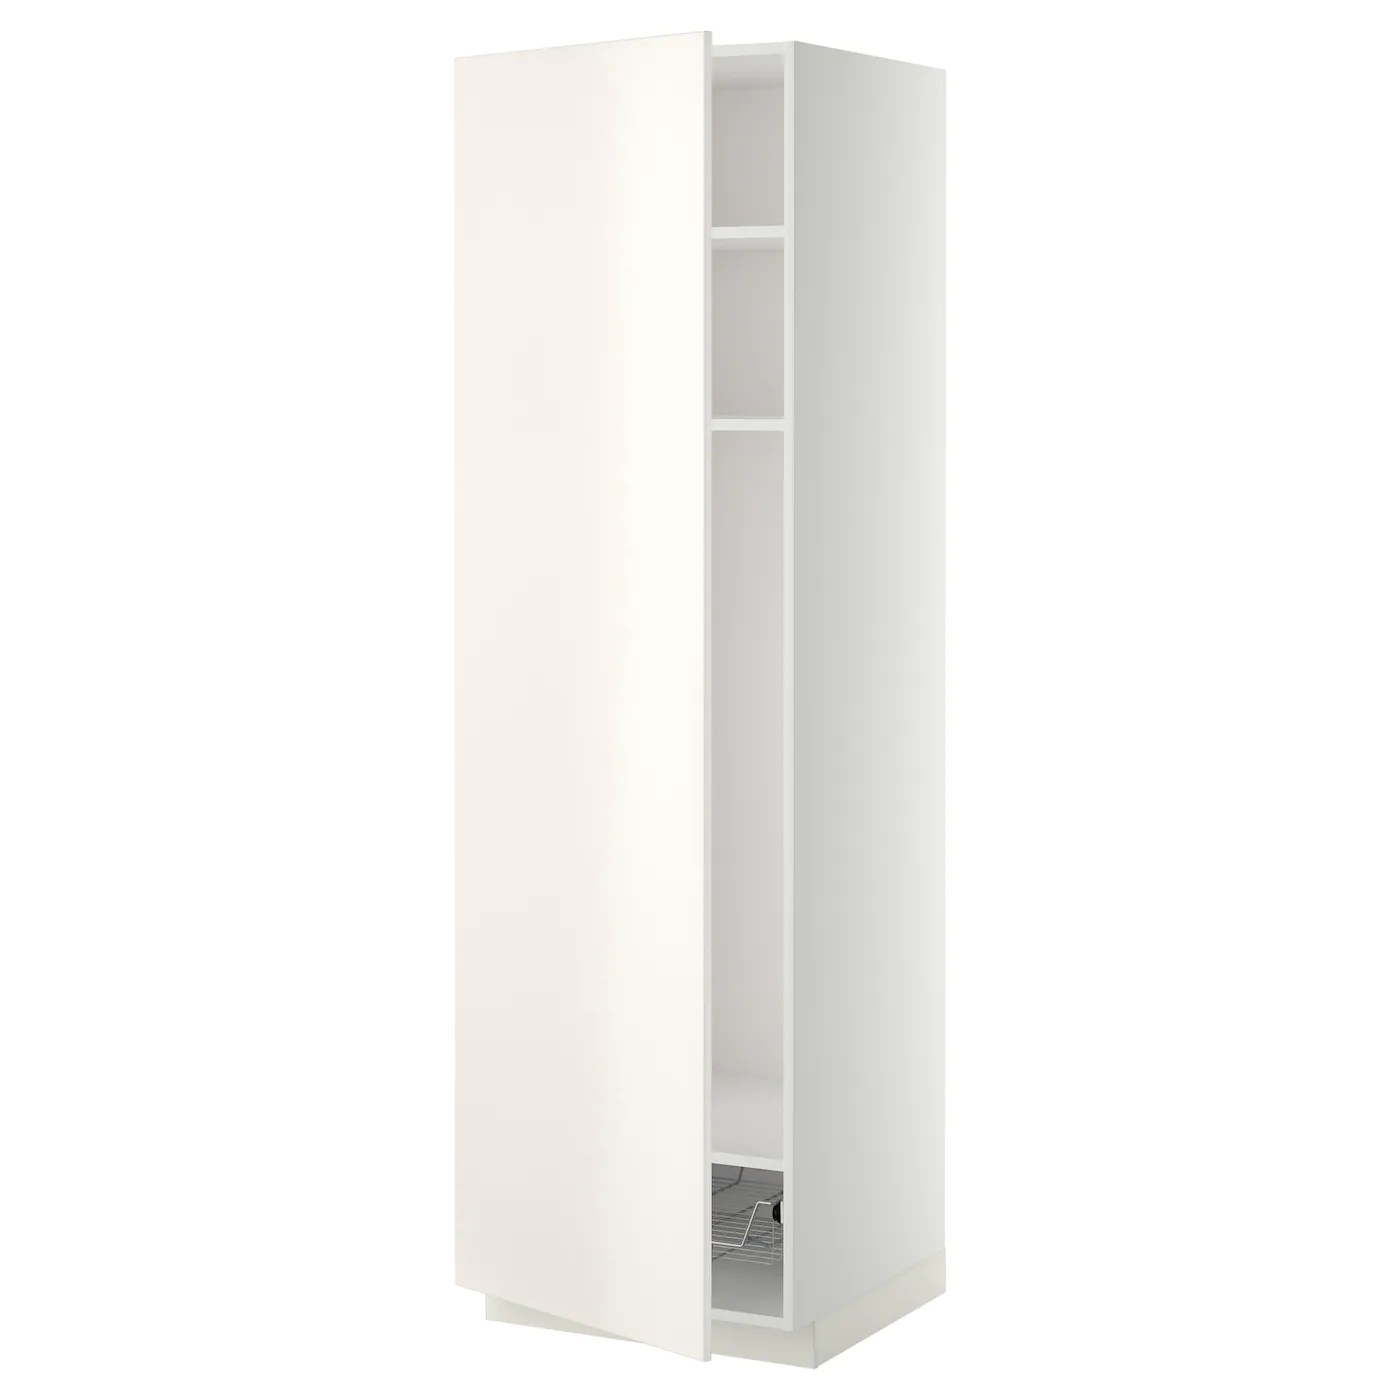 Ikea Küche 200 Cm Metod High Cabinet W Shelves Wire Basket White Veddinge